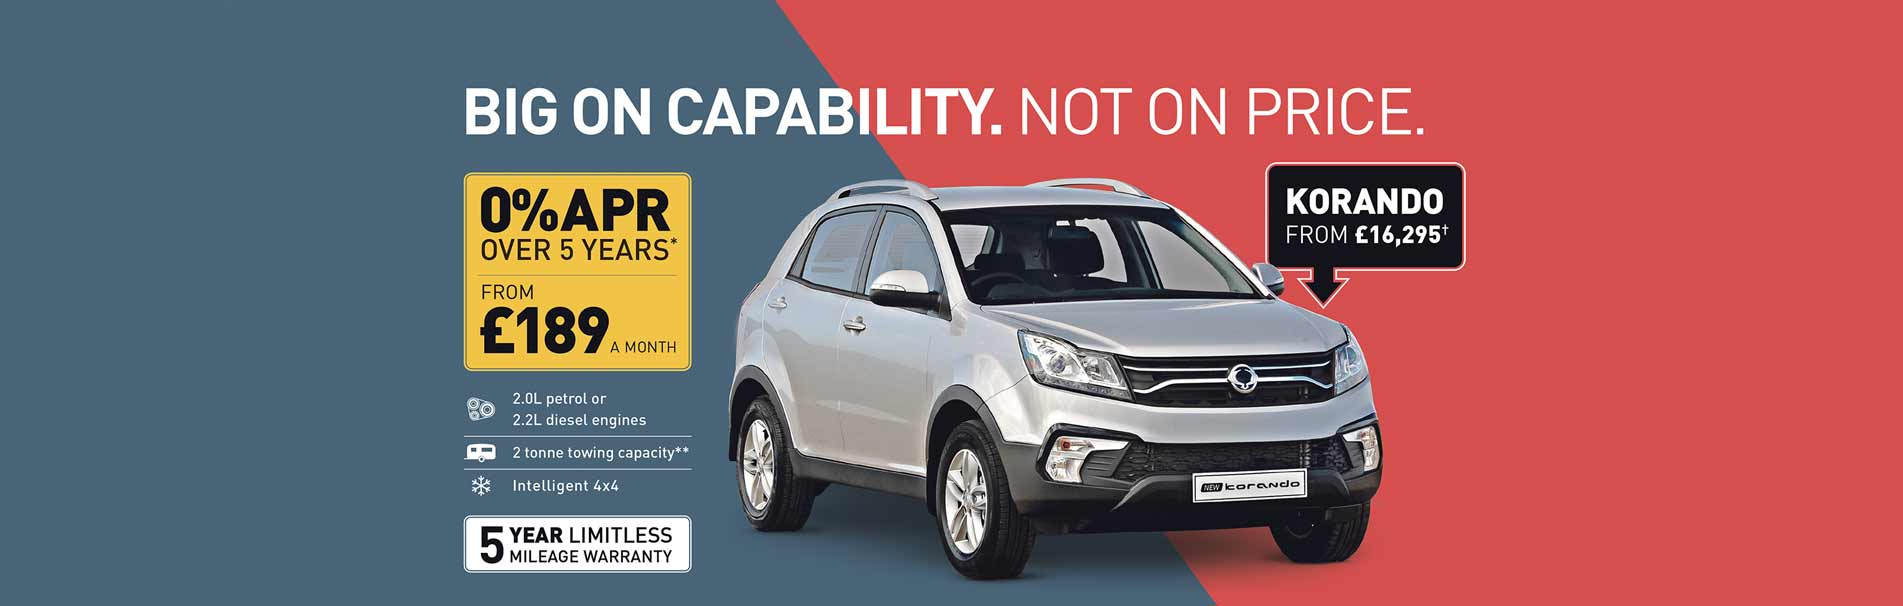 ssangyong-korando-5-years-zero-percent-apr-sli